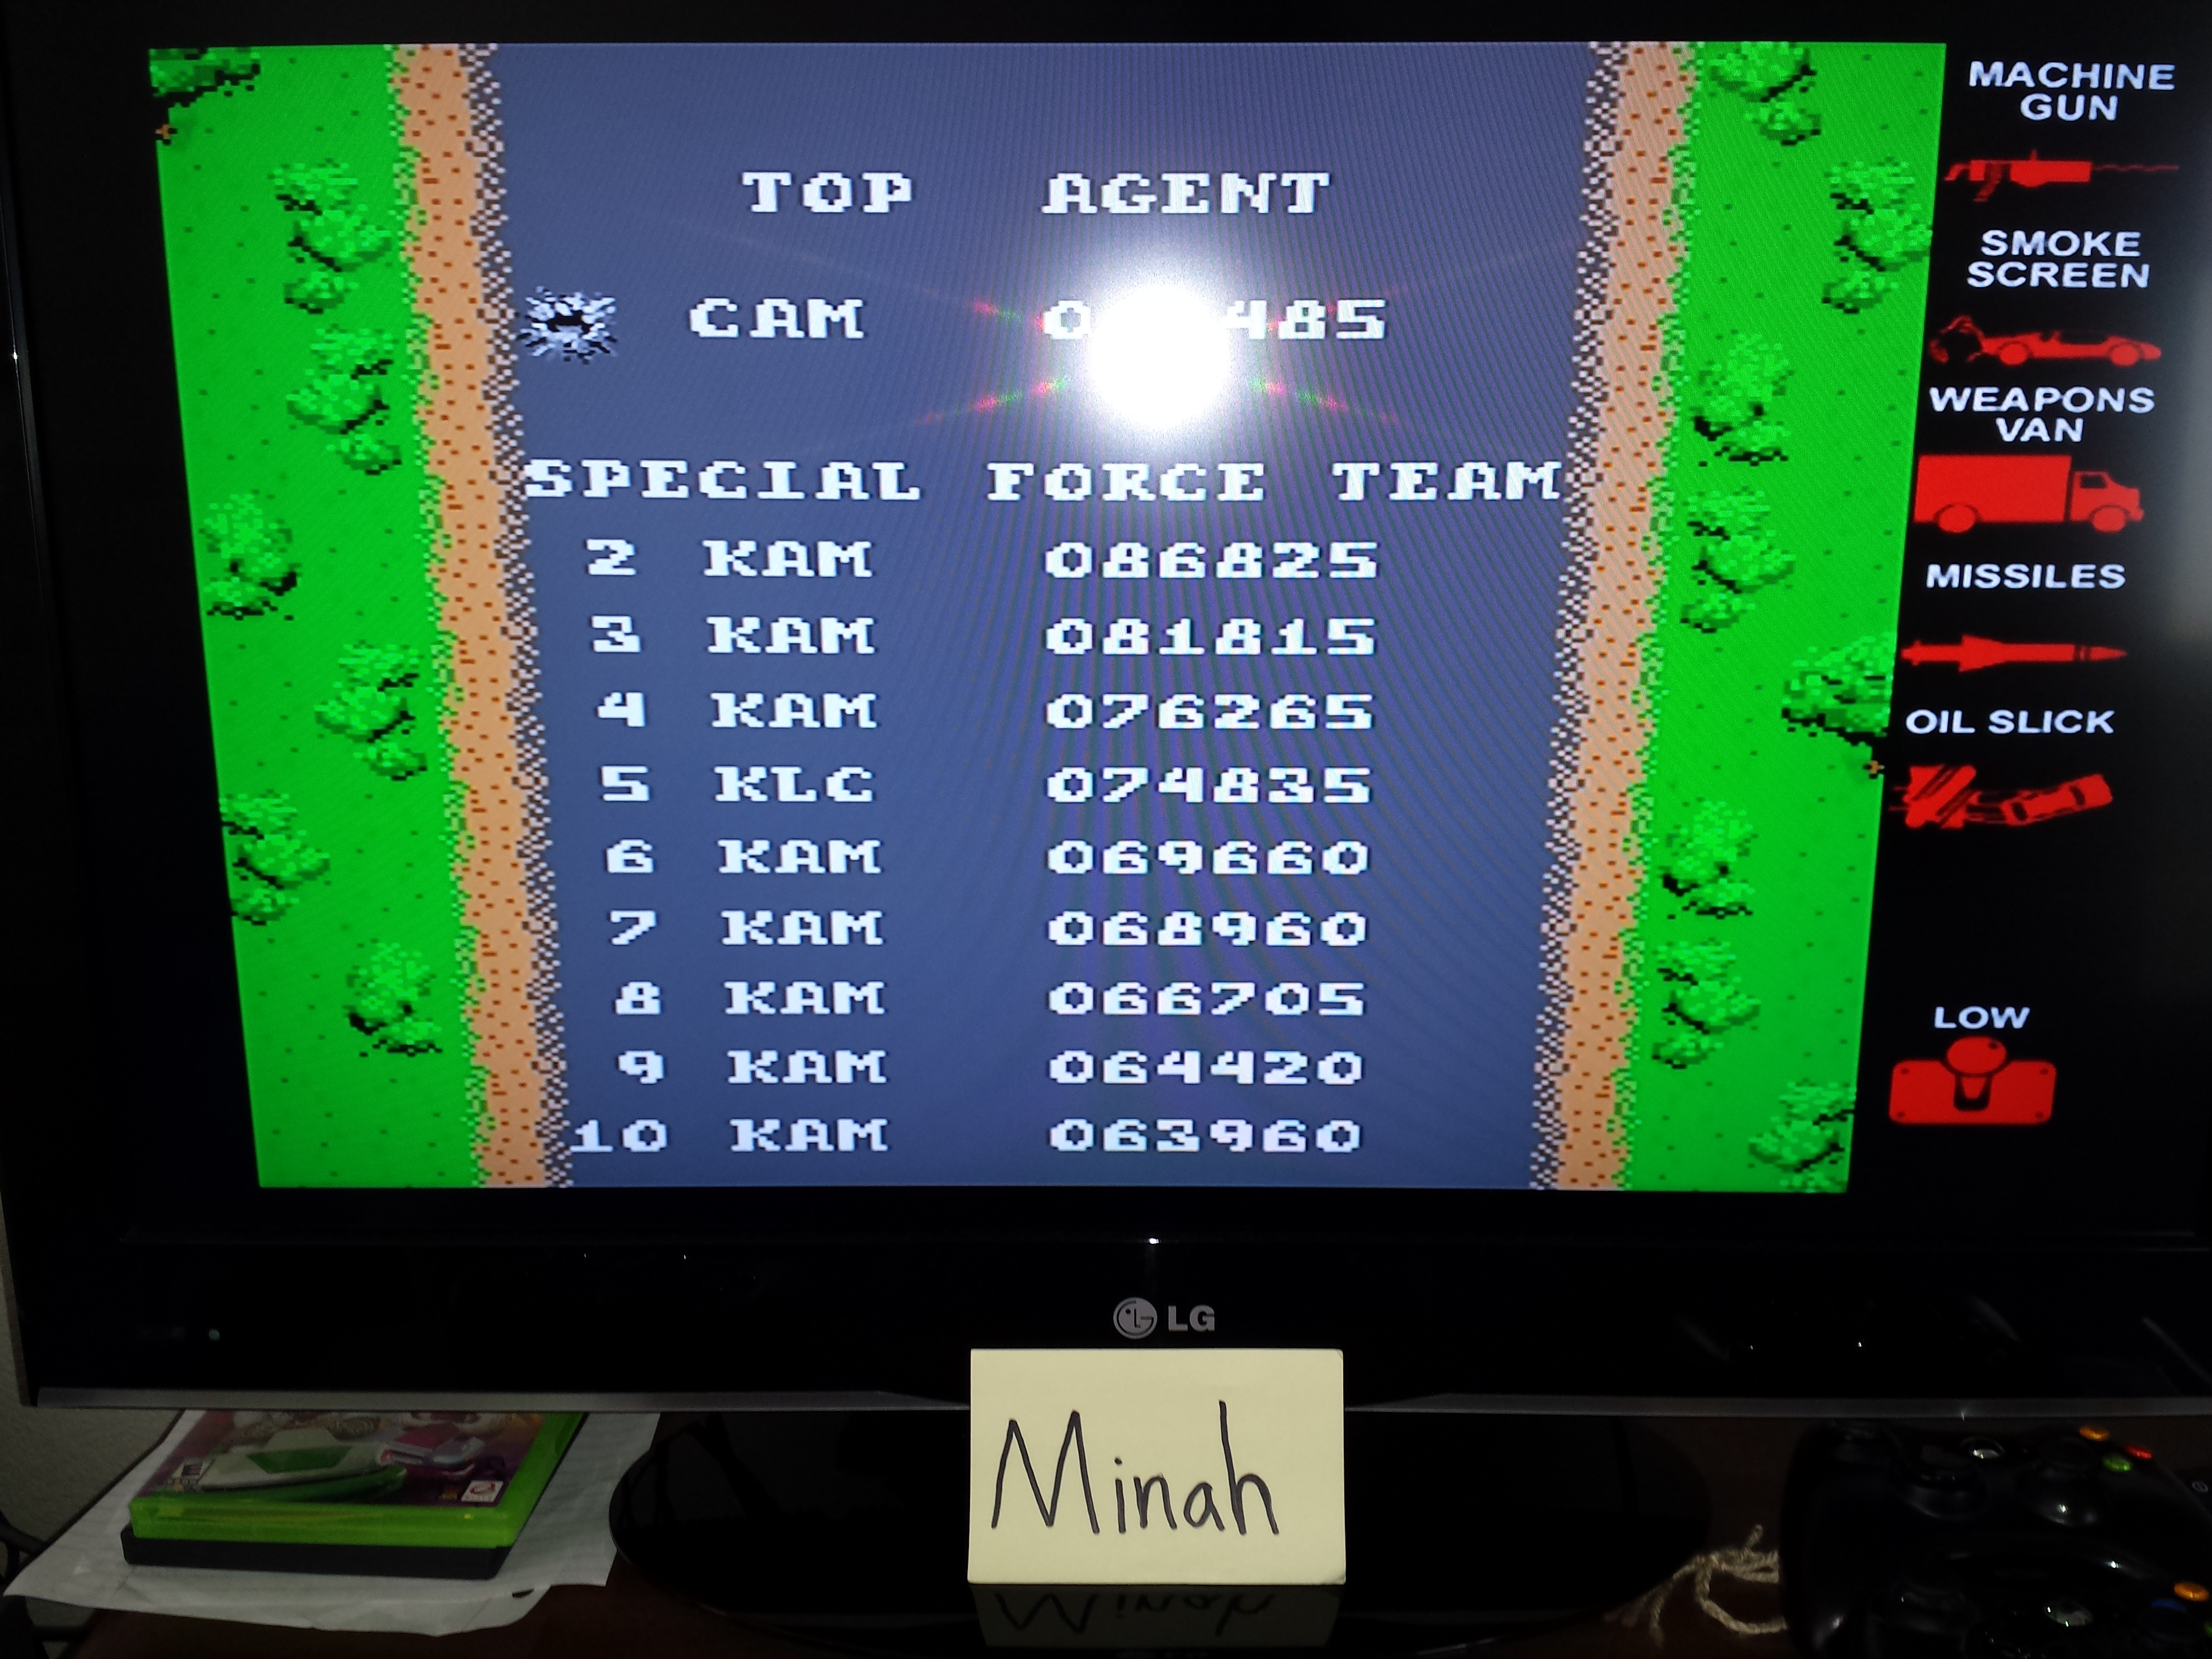 Midway Arcade Treasures: Spy Hunter 86,825 points